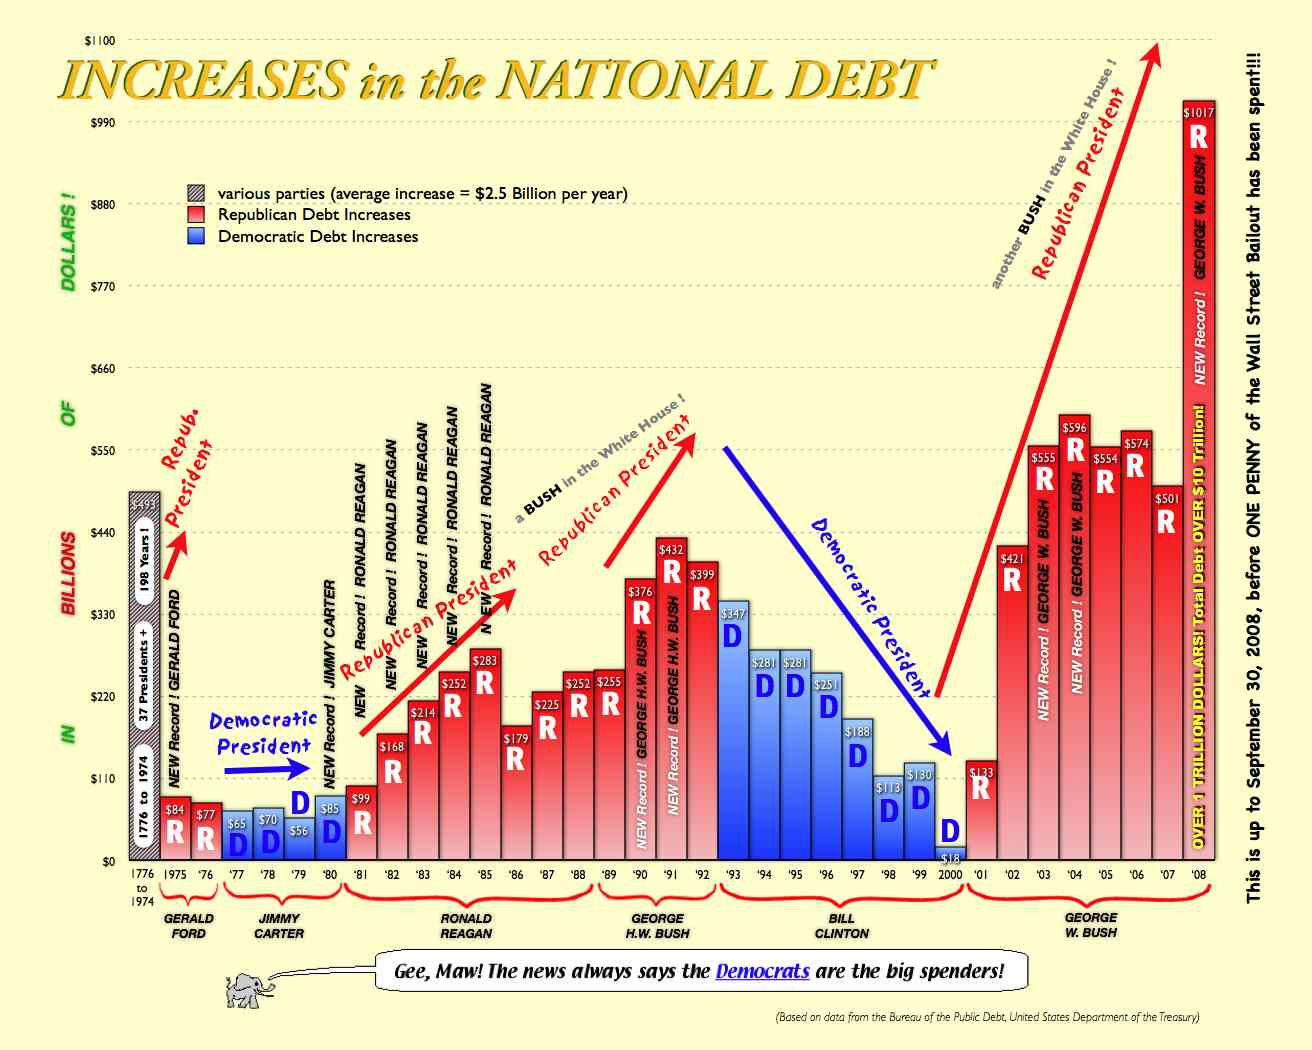 Increases in the national debt chart